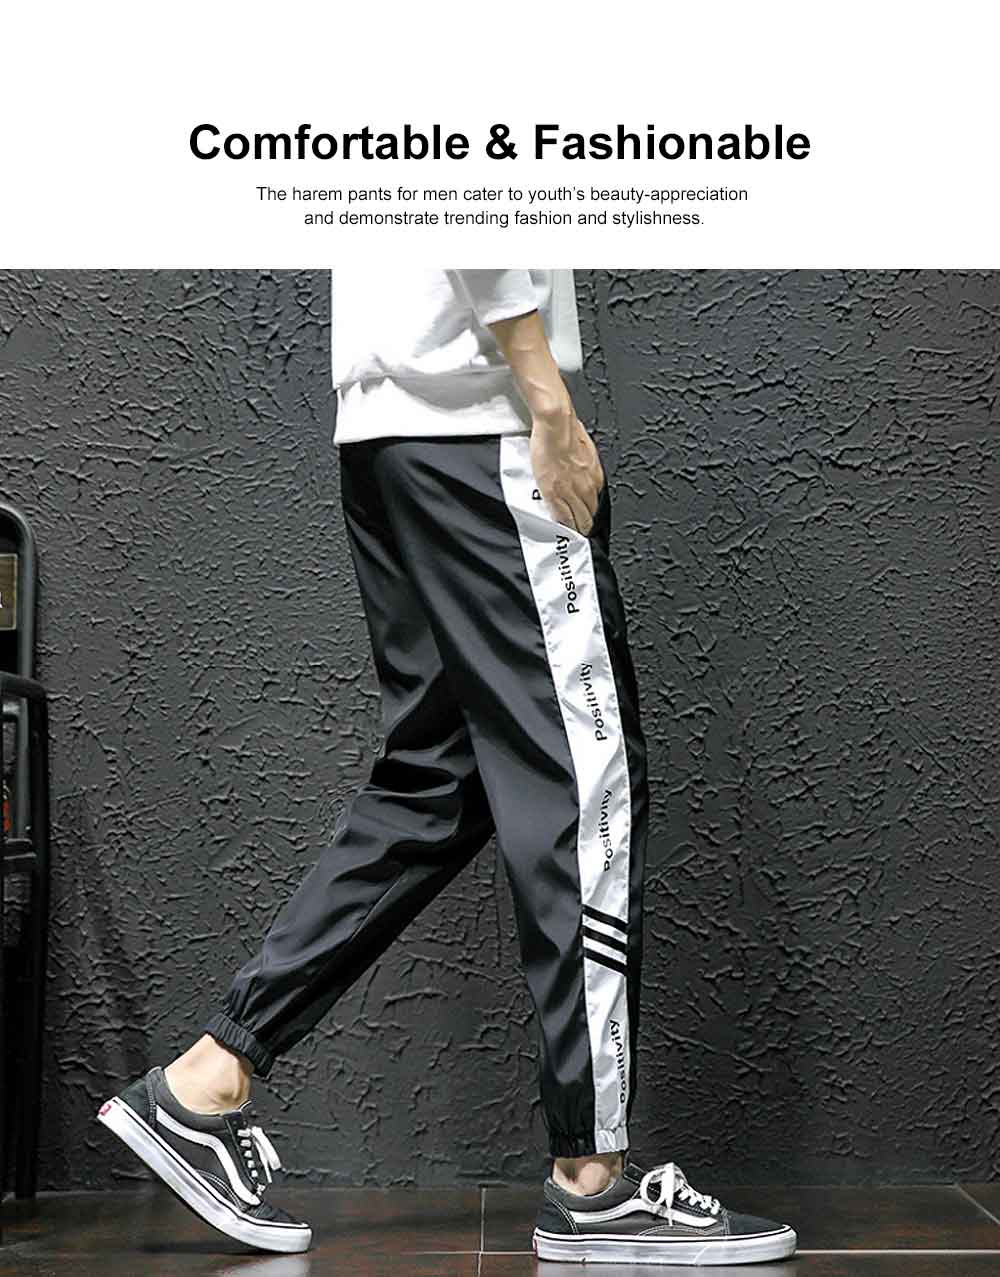 2019 Casual Harem Pants for Male Spring Summer, Mid-rised Slim-fit Pants for Man, Sports Slacks Men's Trousers 4